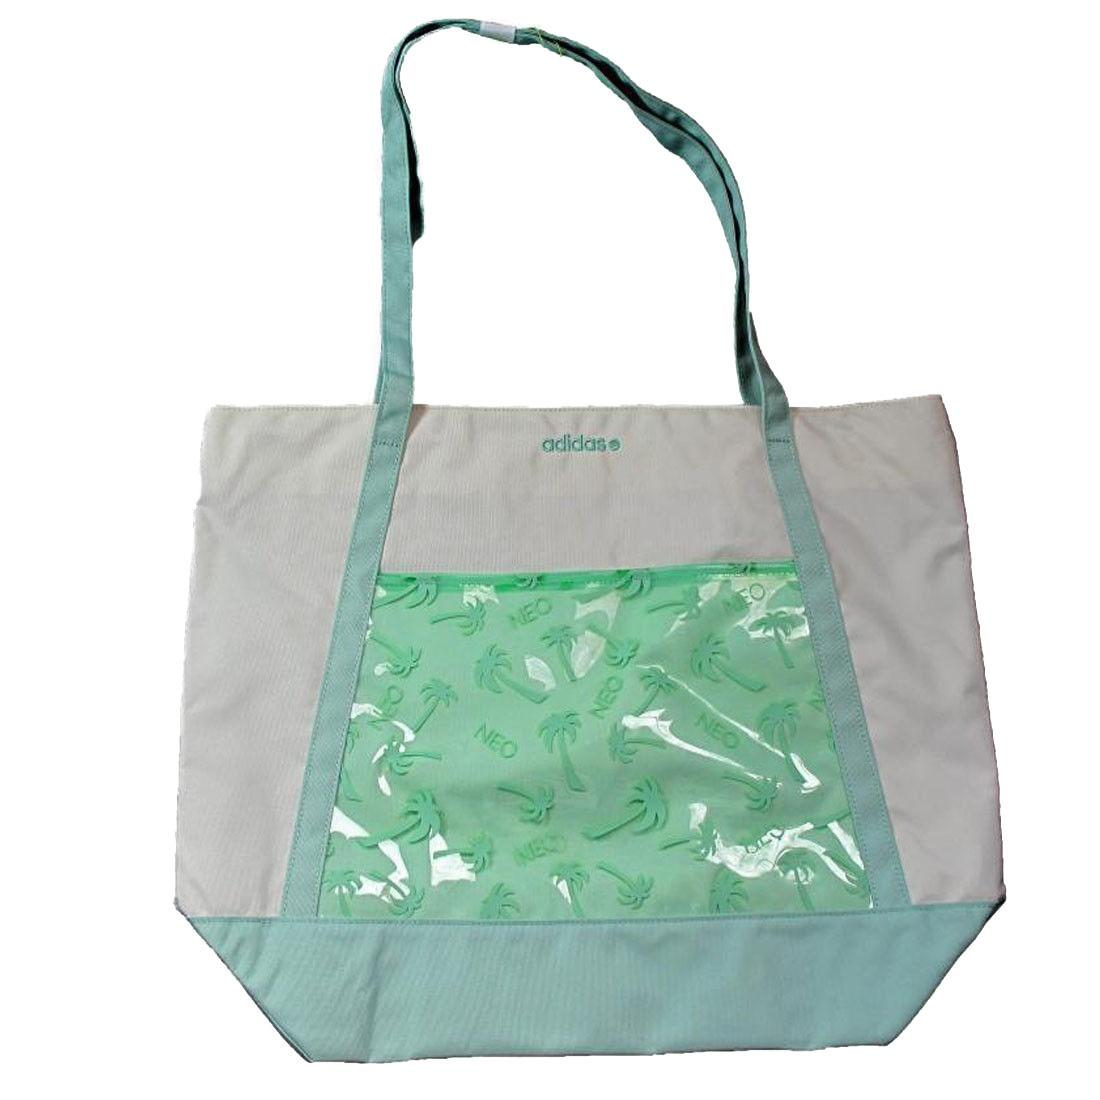 5d1018c44e1d Details about adidas Womens Tote Bag Beige Green Neo Beach Tote Hand Carry  Straps Holdall